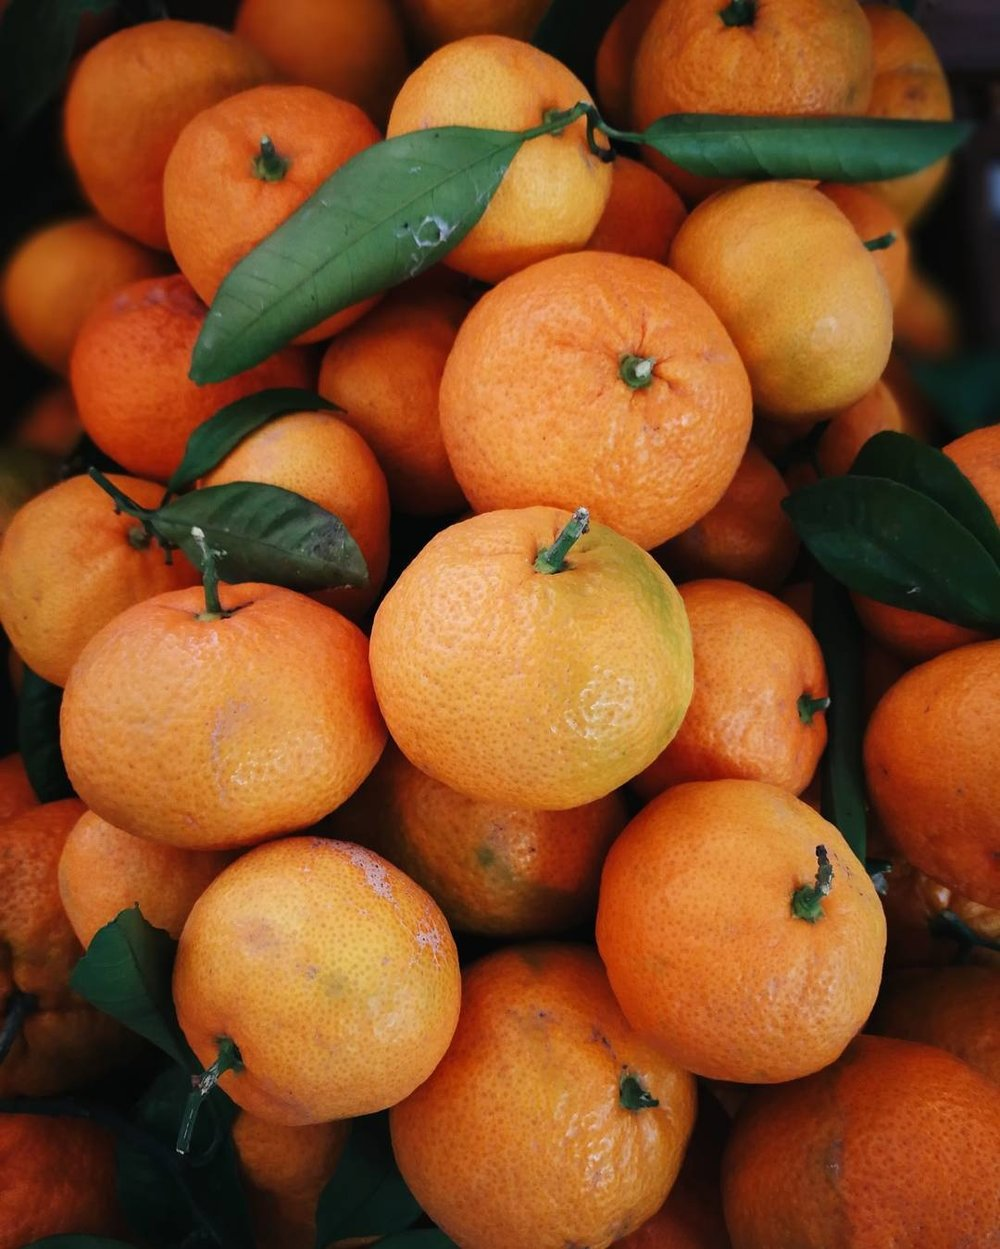 Tangerines & Mandarins - Algerian/Clementine Tangerines (sweet with seeds) & Satsuma Mandarins (sweet-tangy and seedless).